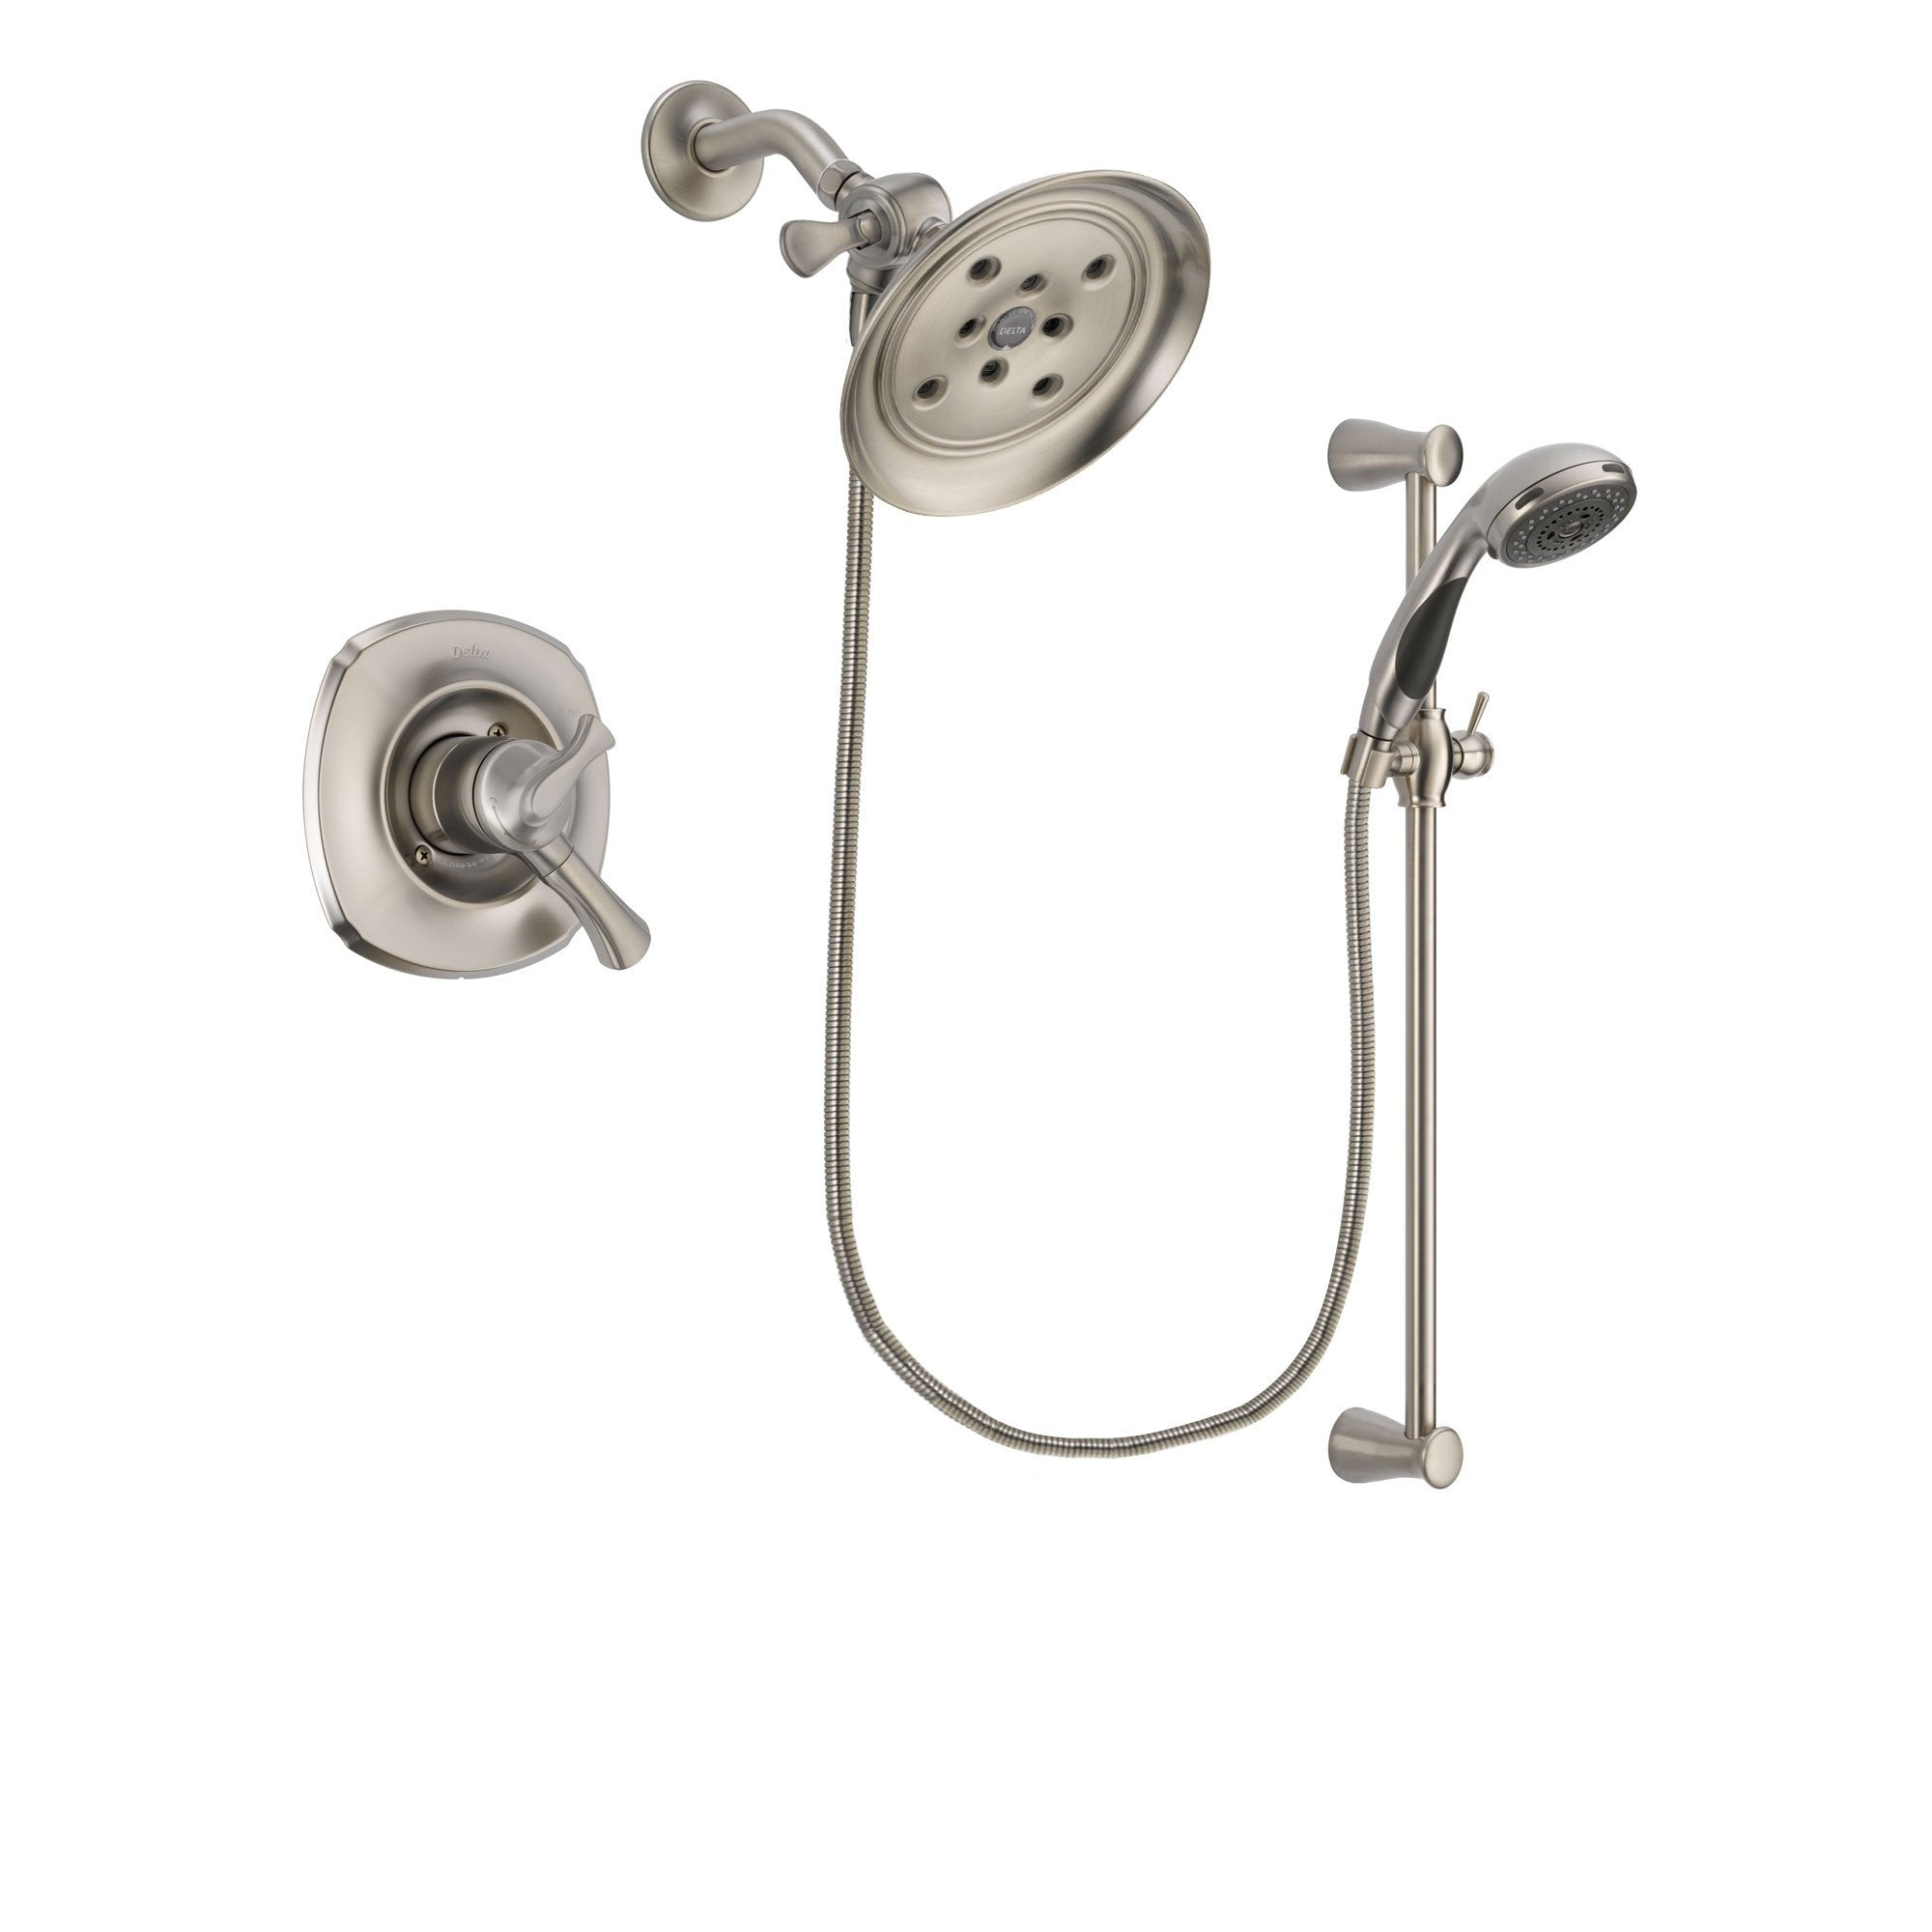 Delta Addison Stainless Steel Finish Shower Faucet System w/Hand Shower DSP1610V